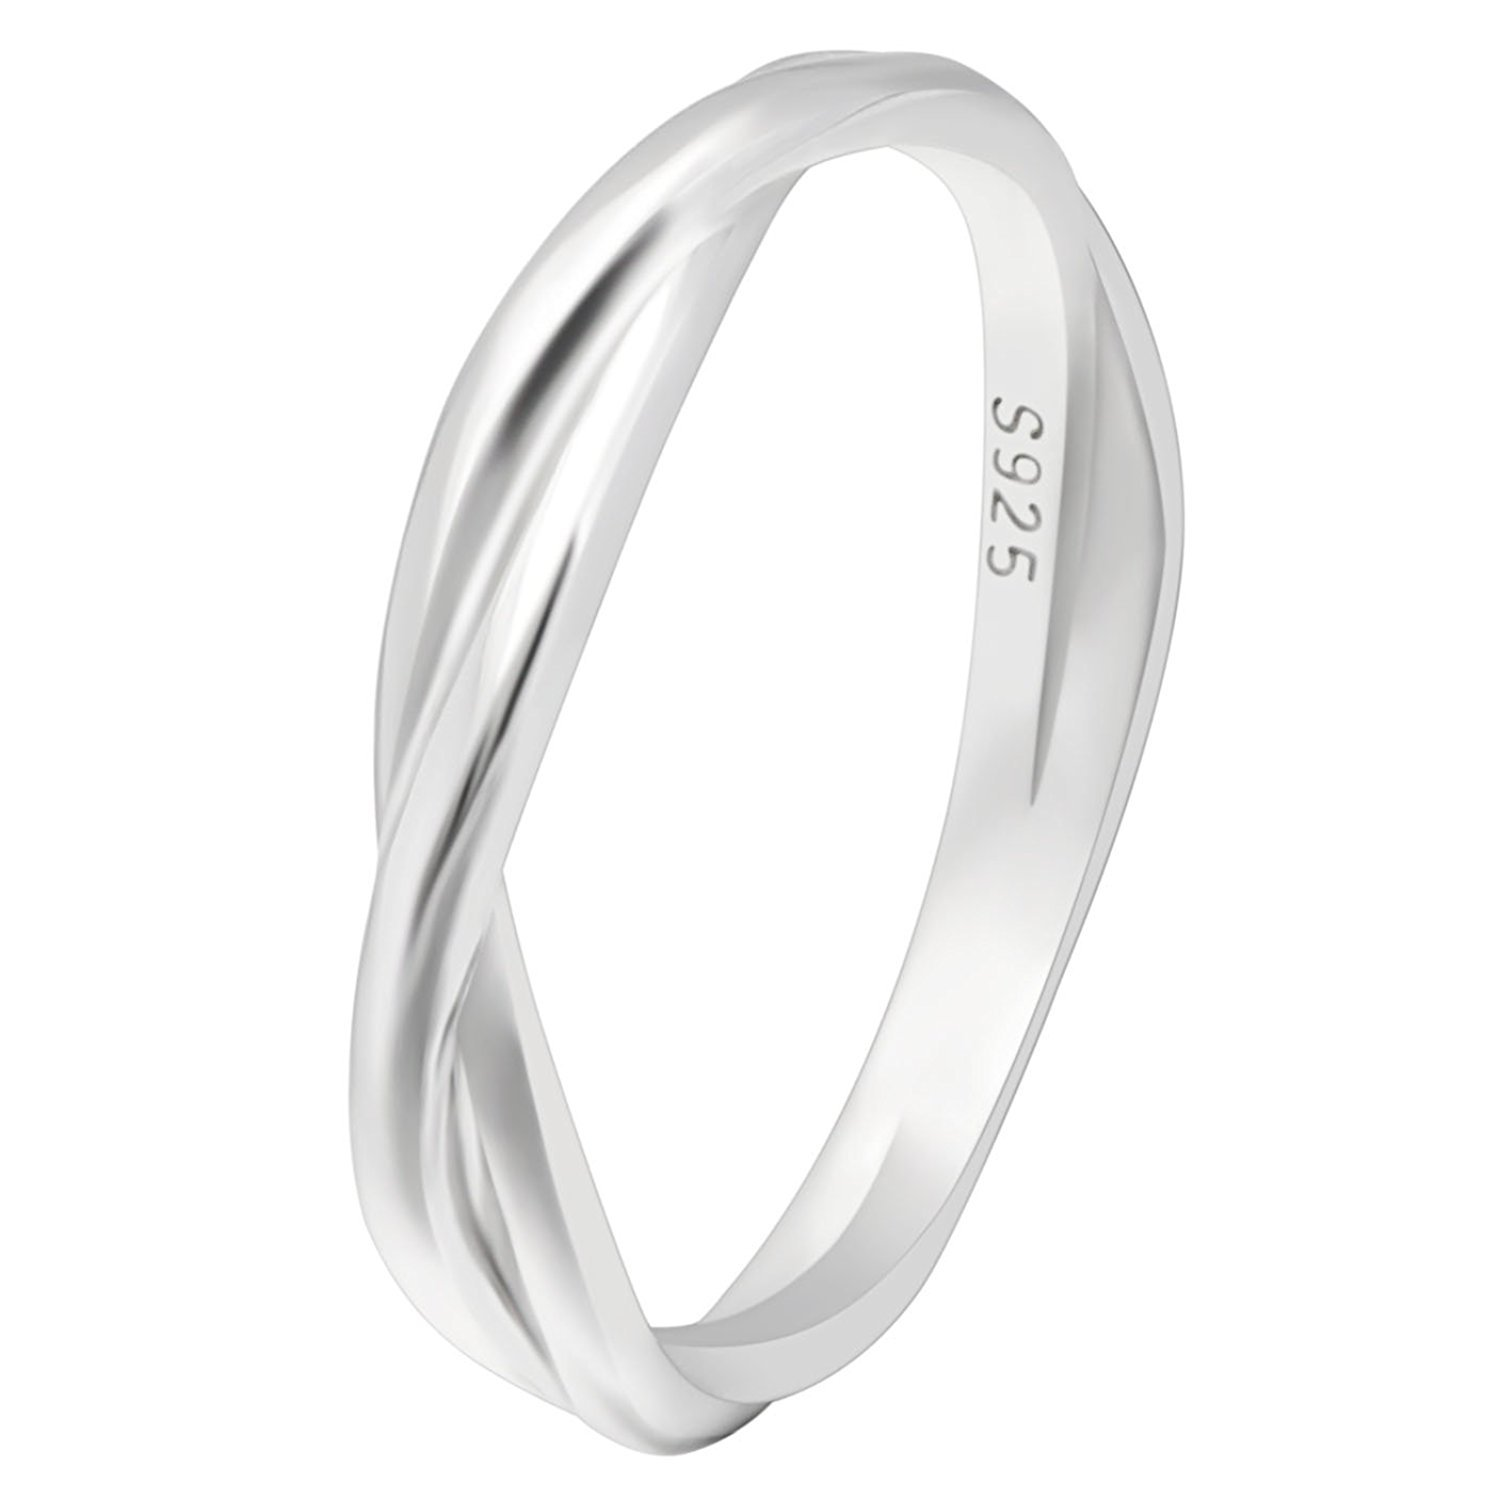 twist ringspotters pi ring three page band cut engagement wedding infinity radiant stone